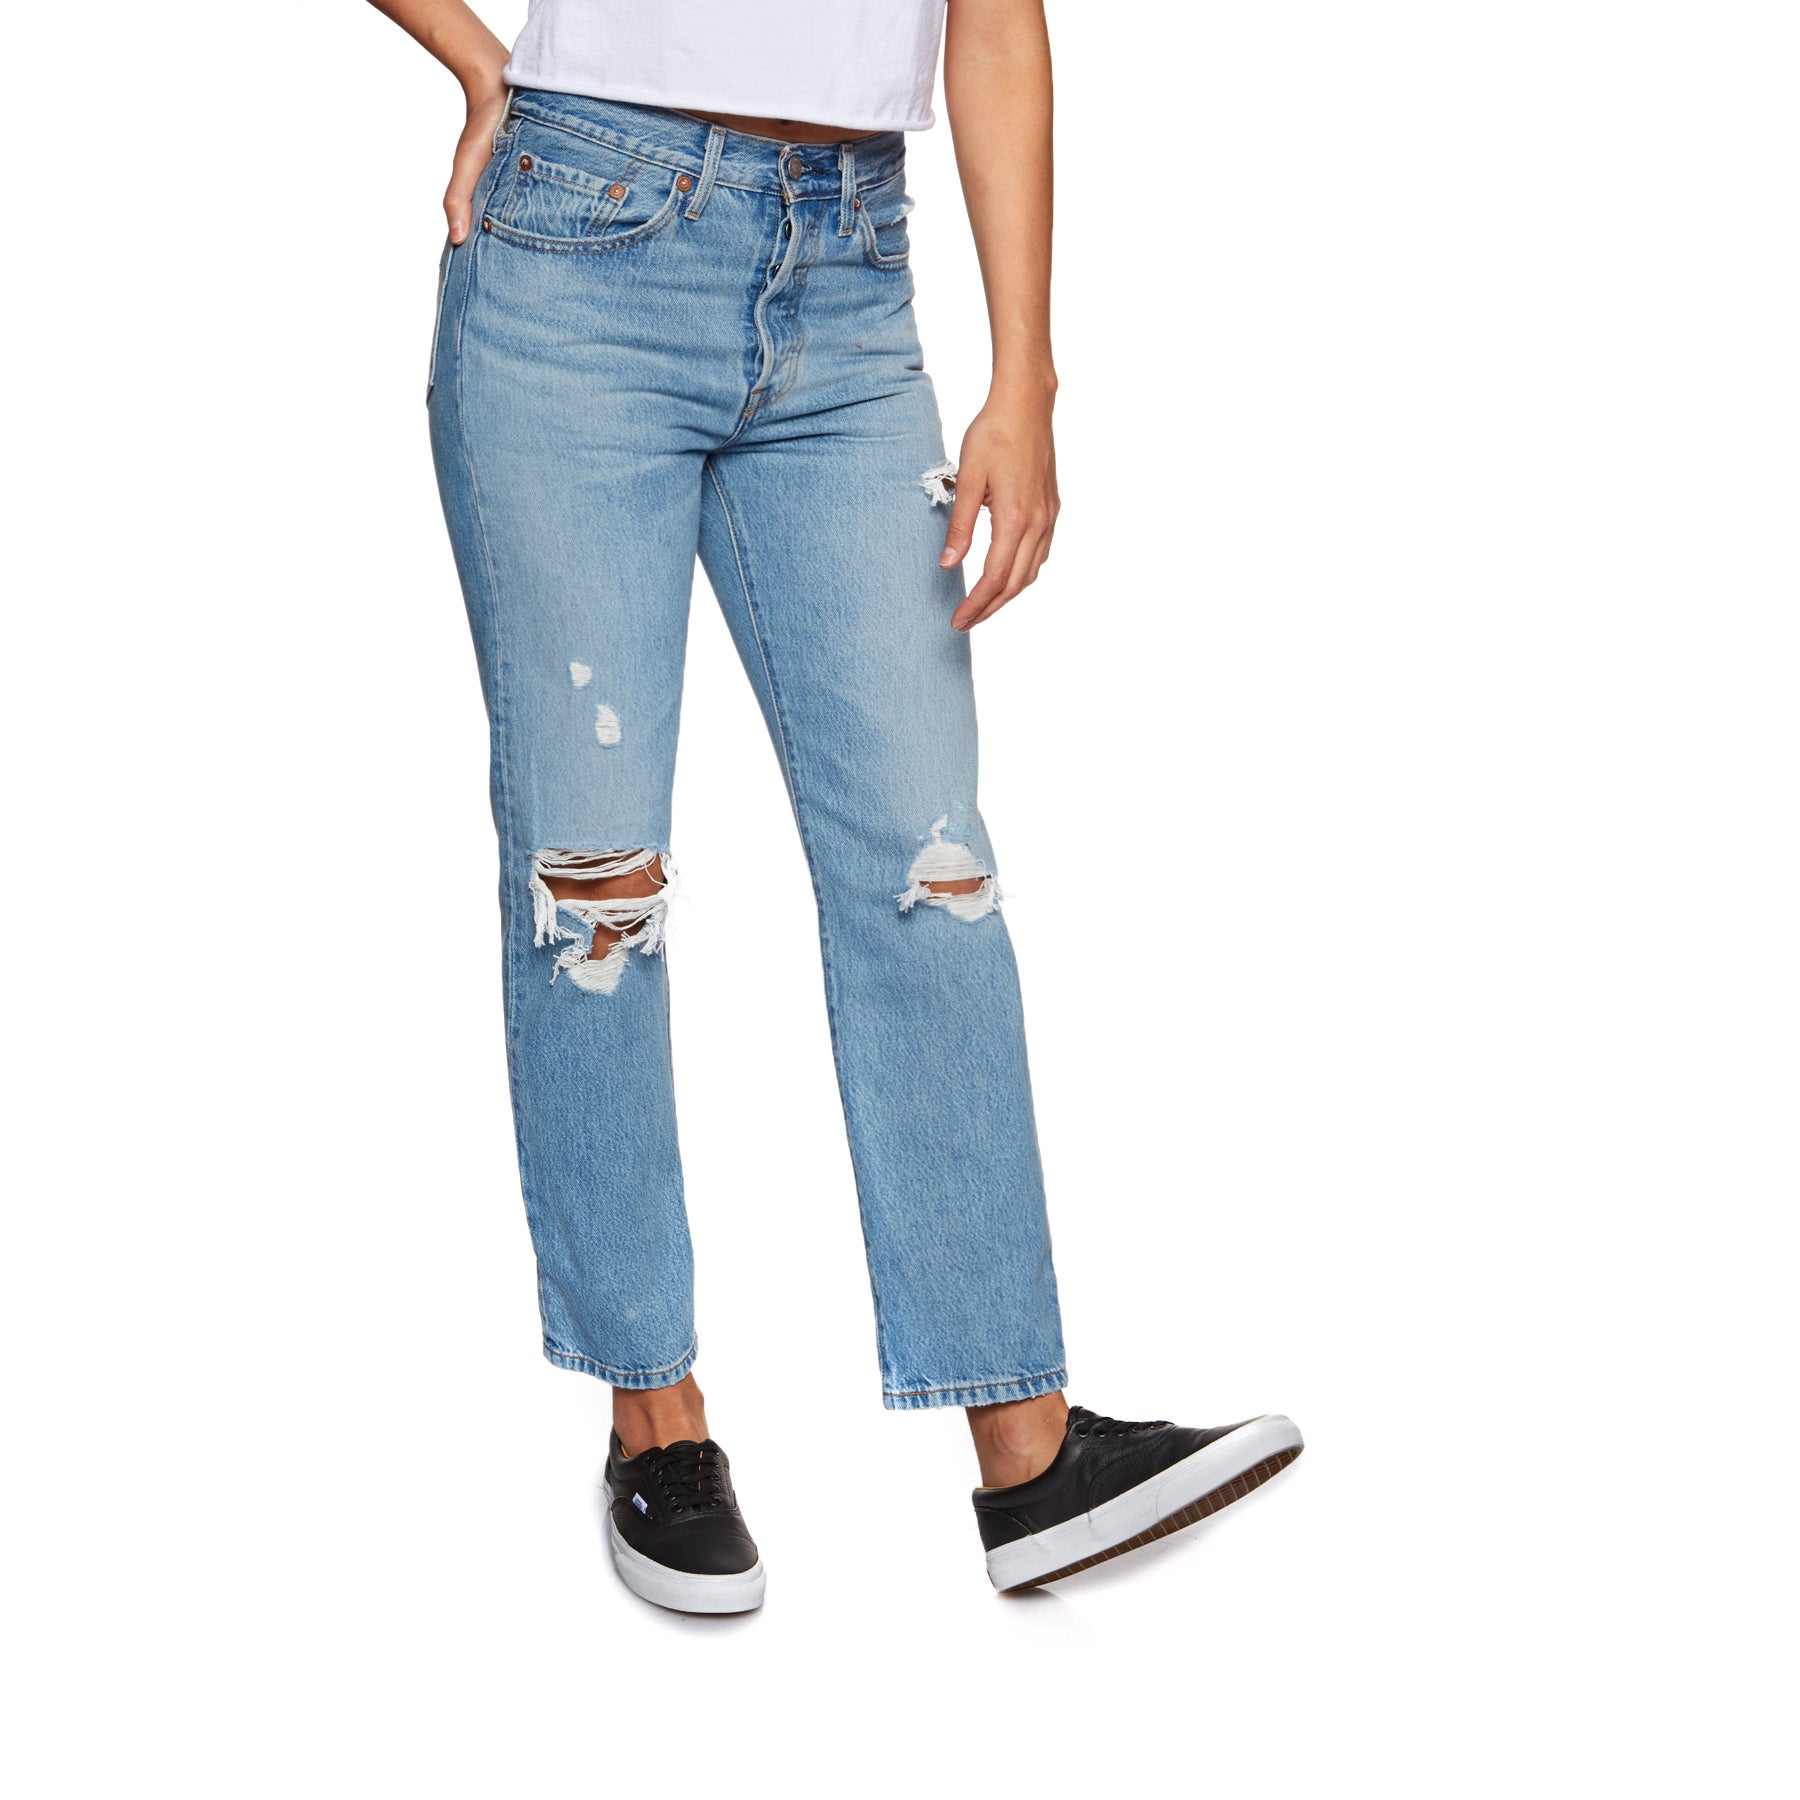 Jeans Femme Levis 501 Crop - Authentically Yours